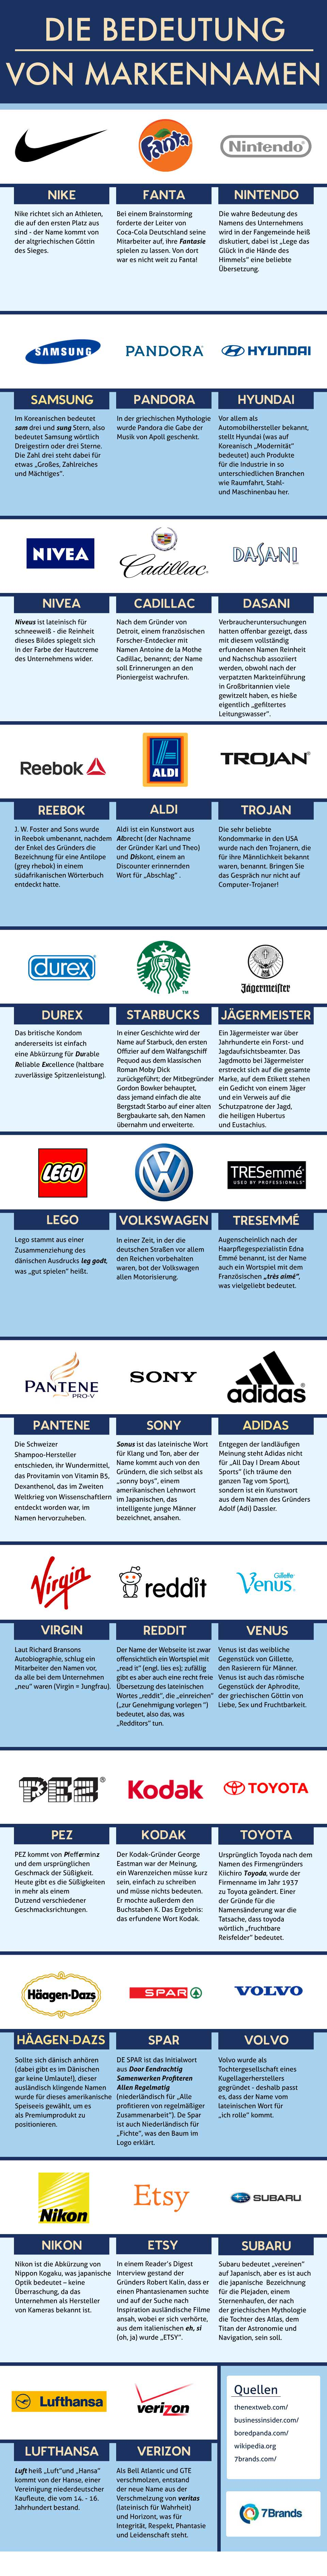 meaning of brand names_DE